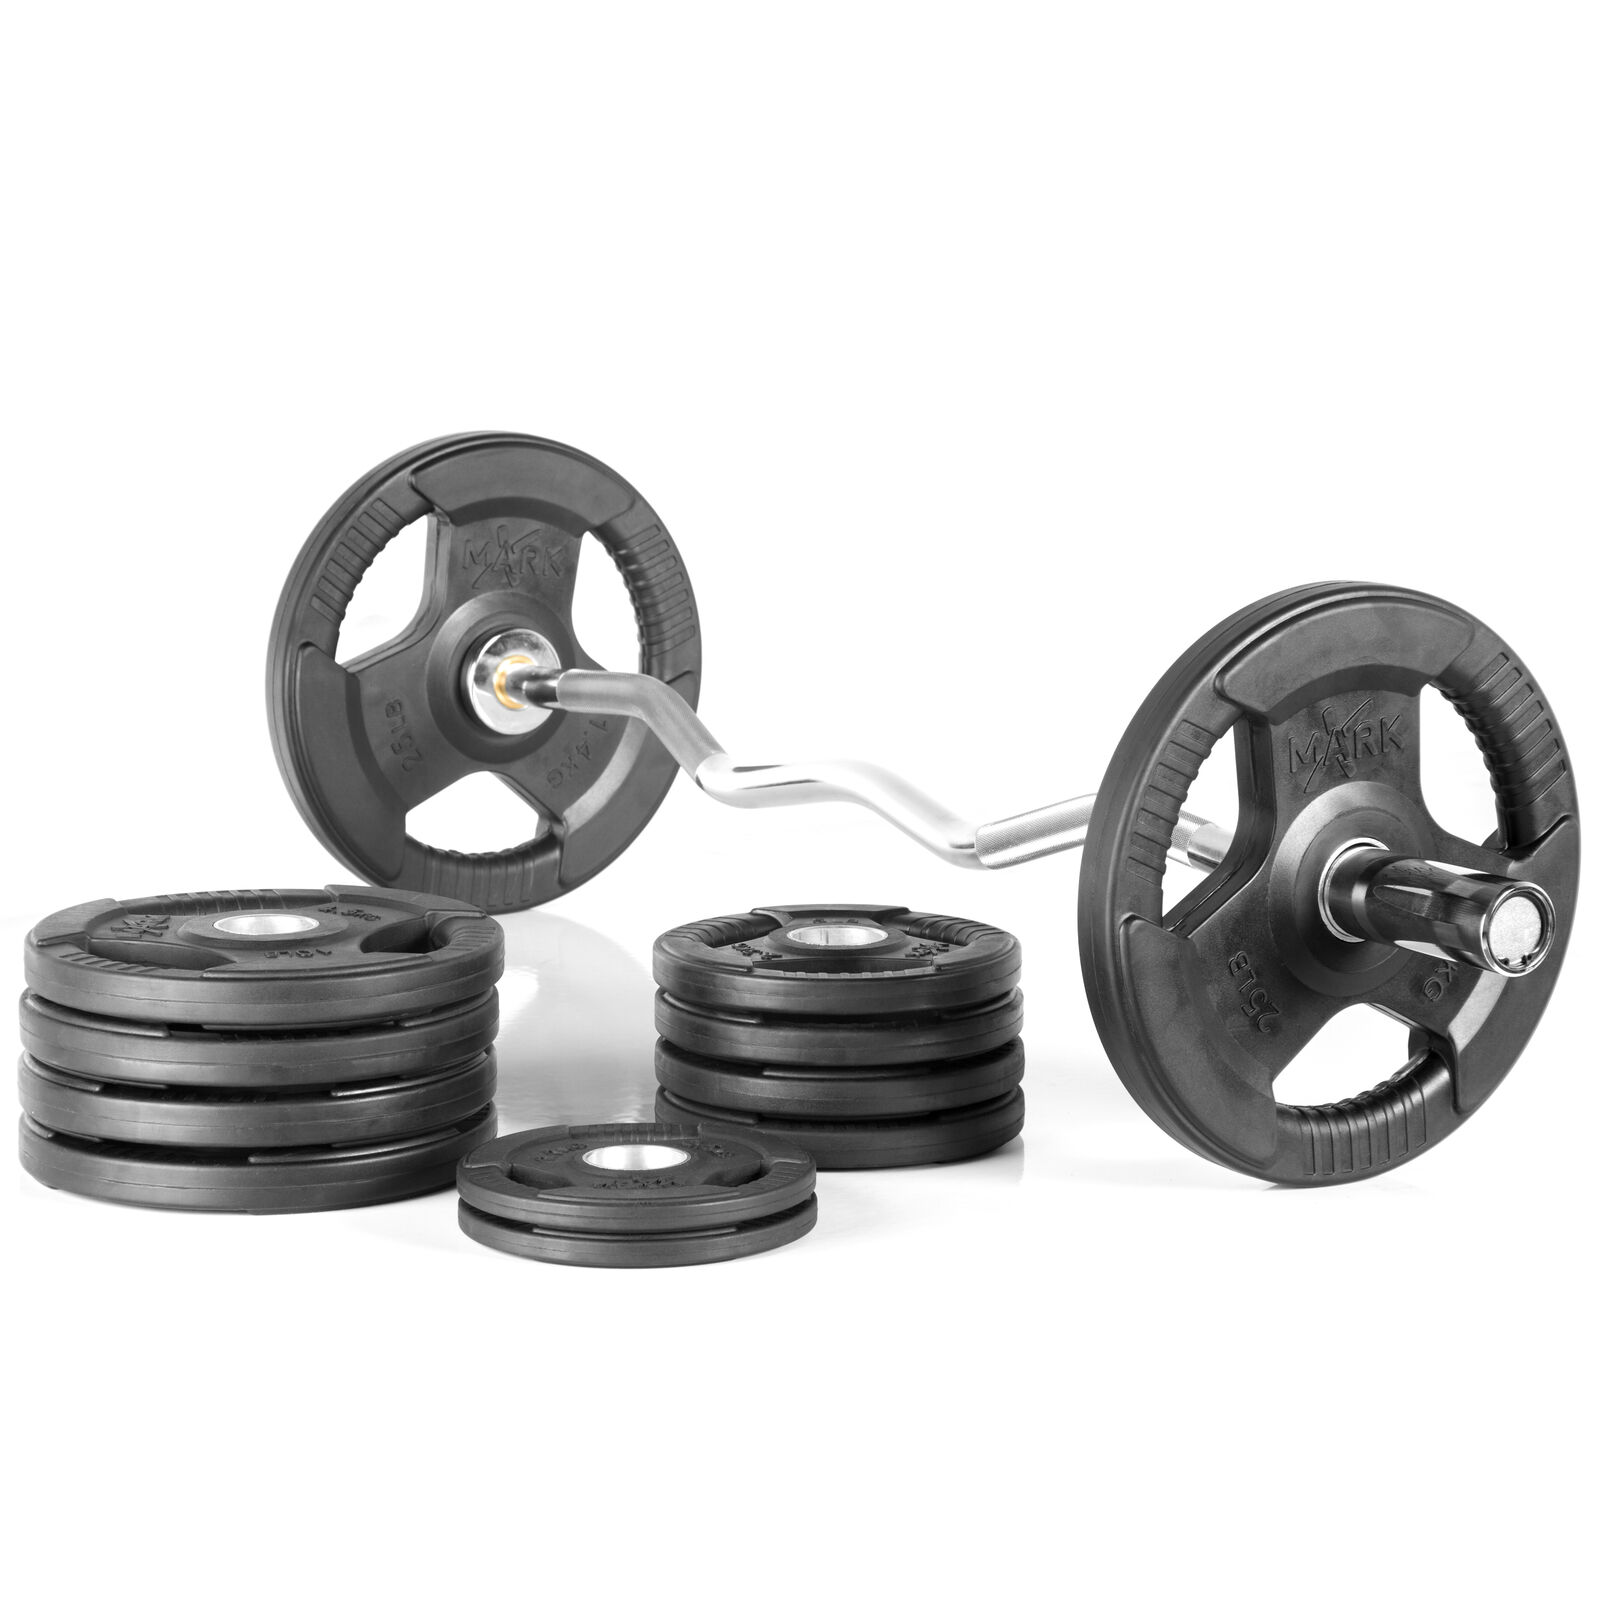 XMark XM-3675-CHROME-BAL-115 Olympic Curl Bar with 115 lb. Olympic Weight  Set  factory outlets